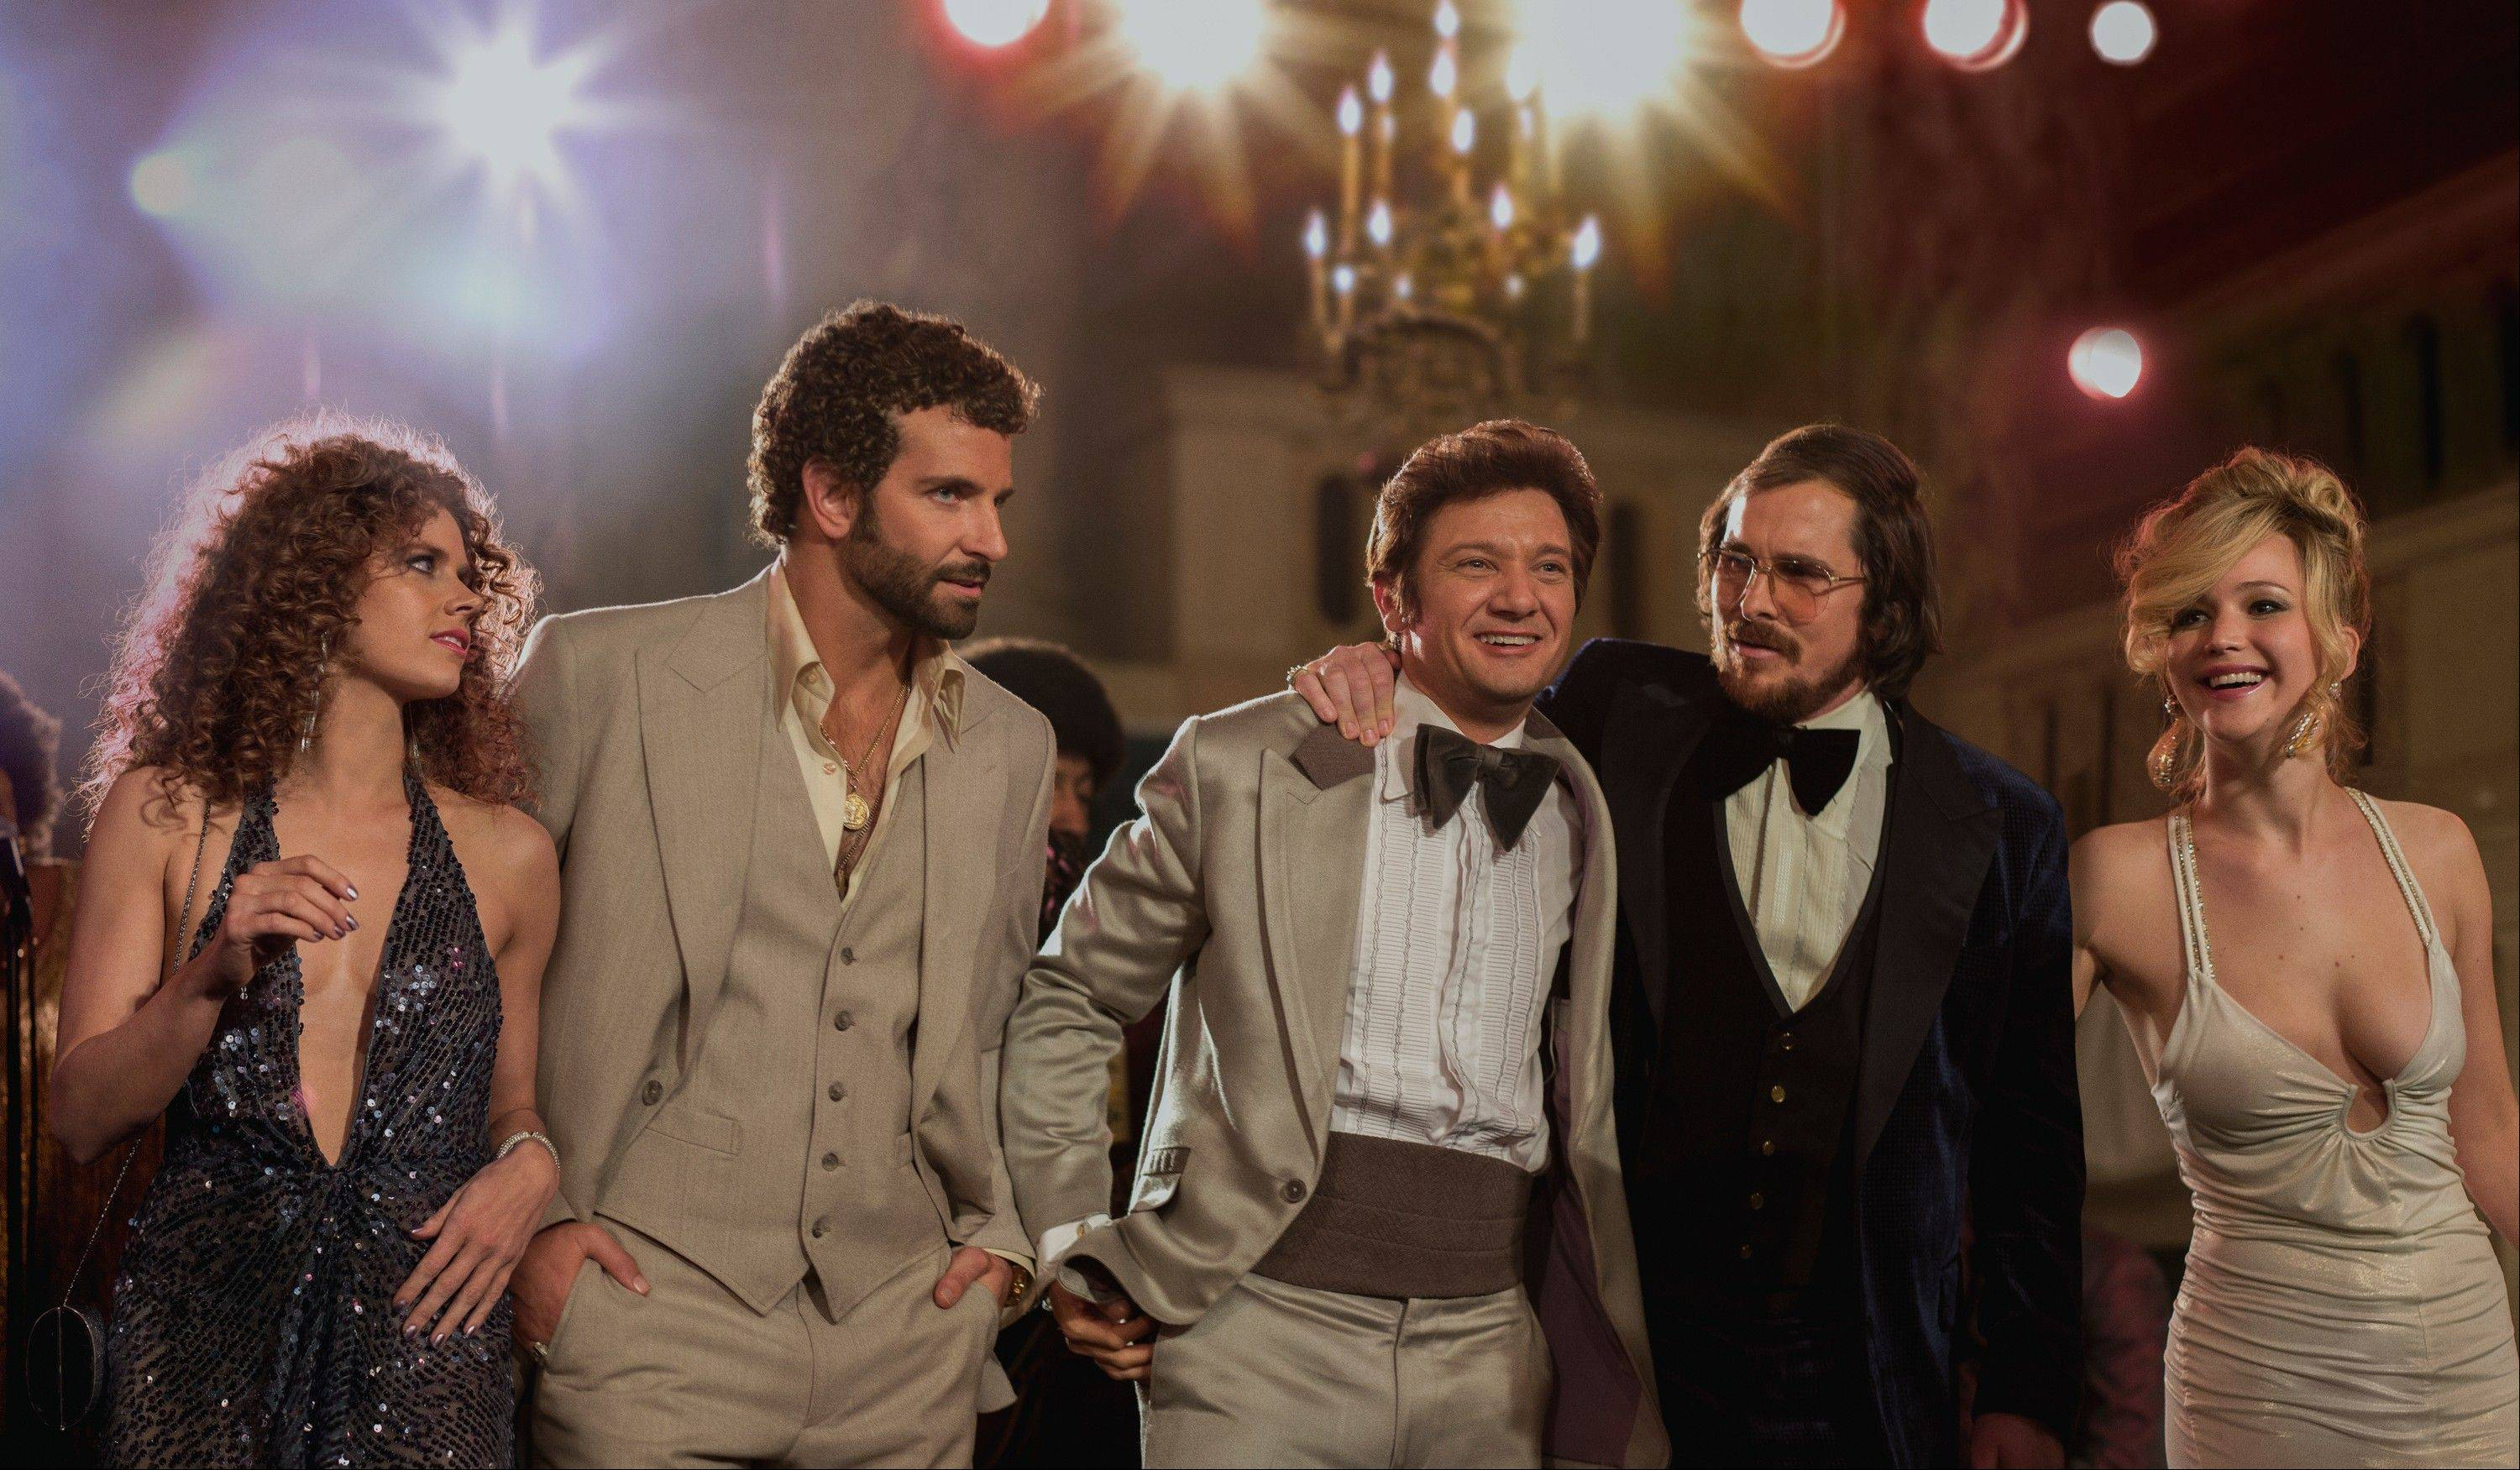 "This film image released by Sony Pictures shows, from left, Amy Adams, as Sydney Prosser, Bradley Cooper, as Richie Dimaso, Jeremy Renner, as Mayor Carmine Polito, Christian Bale as Irving Rosenfeld, and Jennifer Lawrence as Rosalyn Rosenfeld, in a scene from ""American Hustle."""